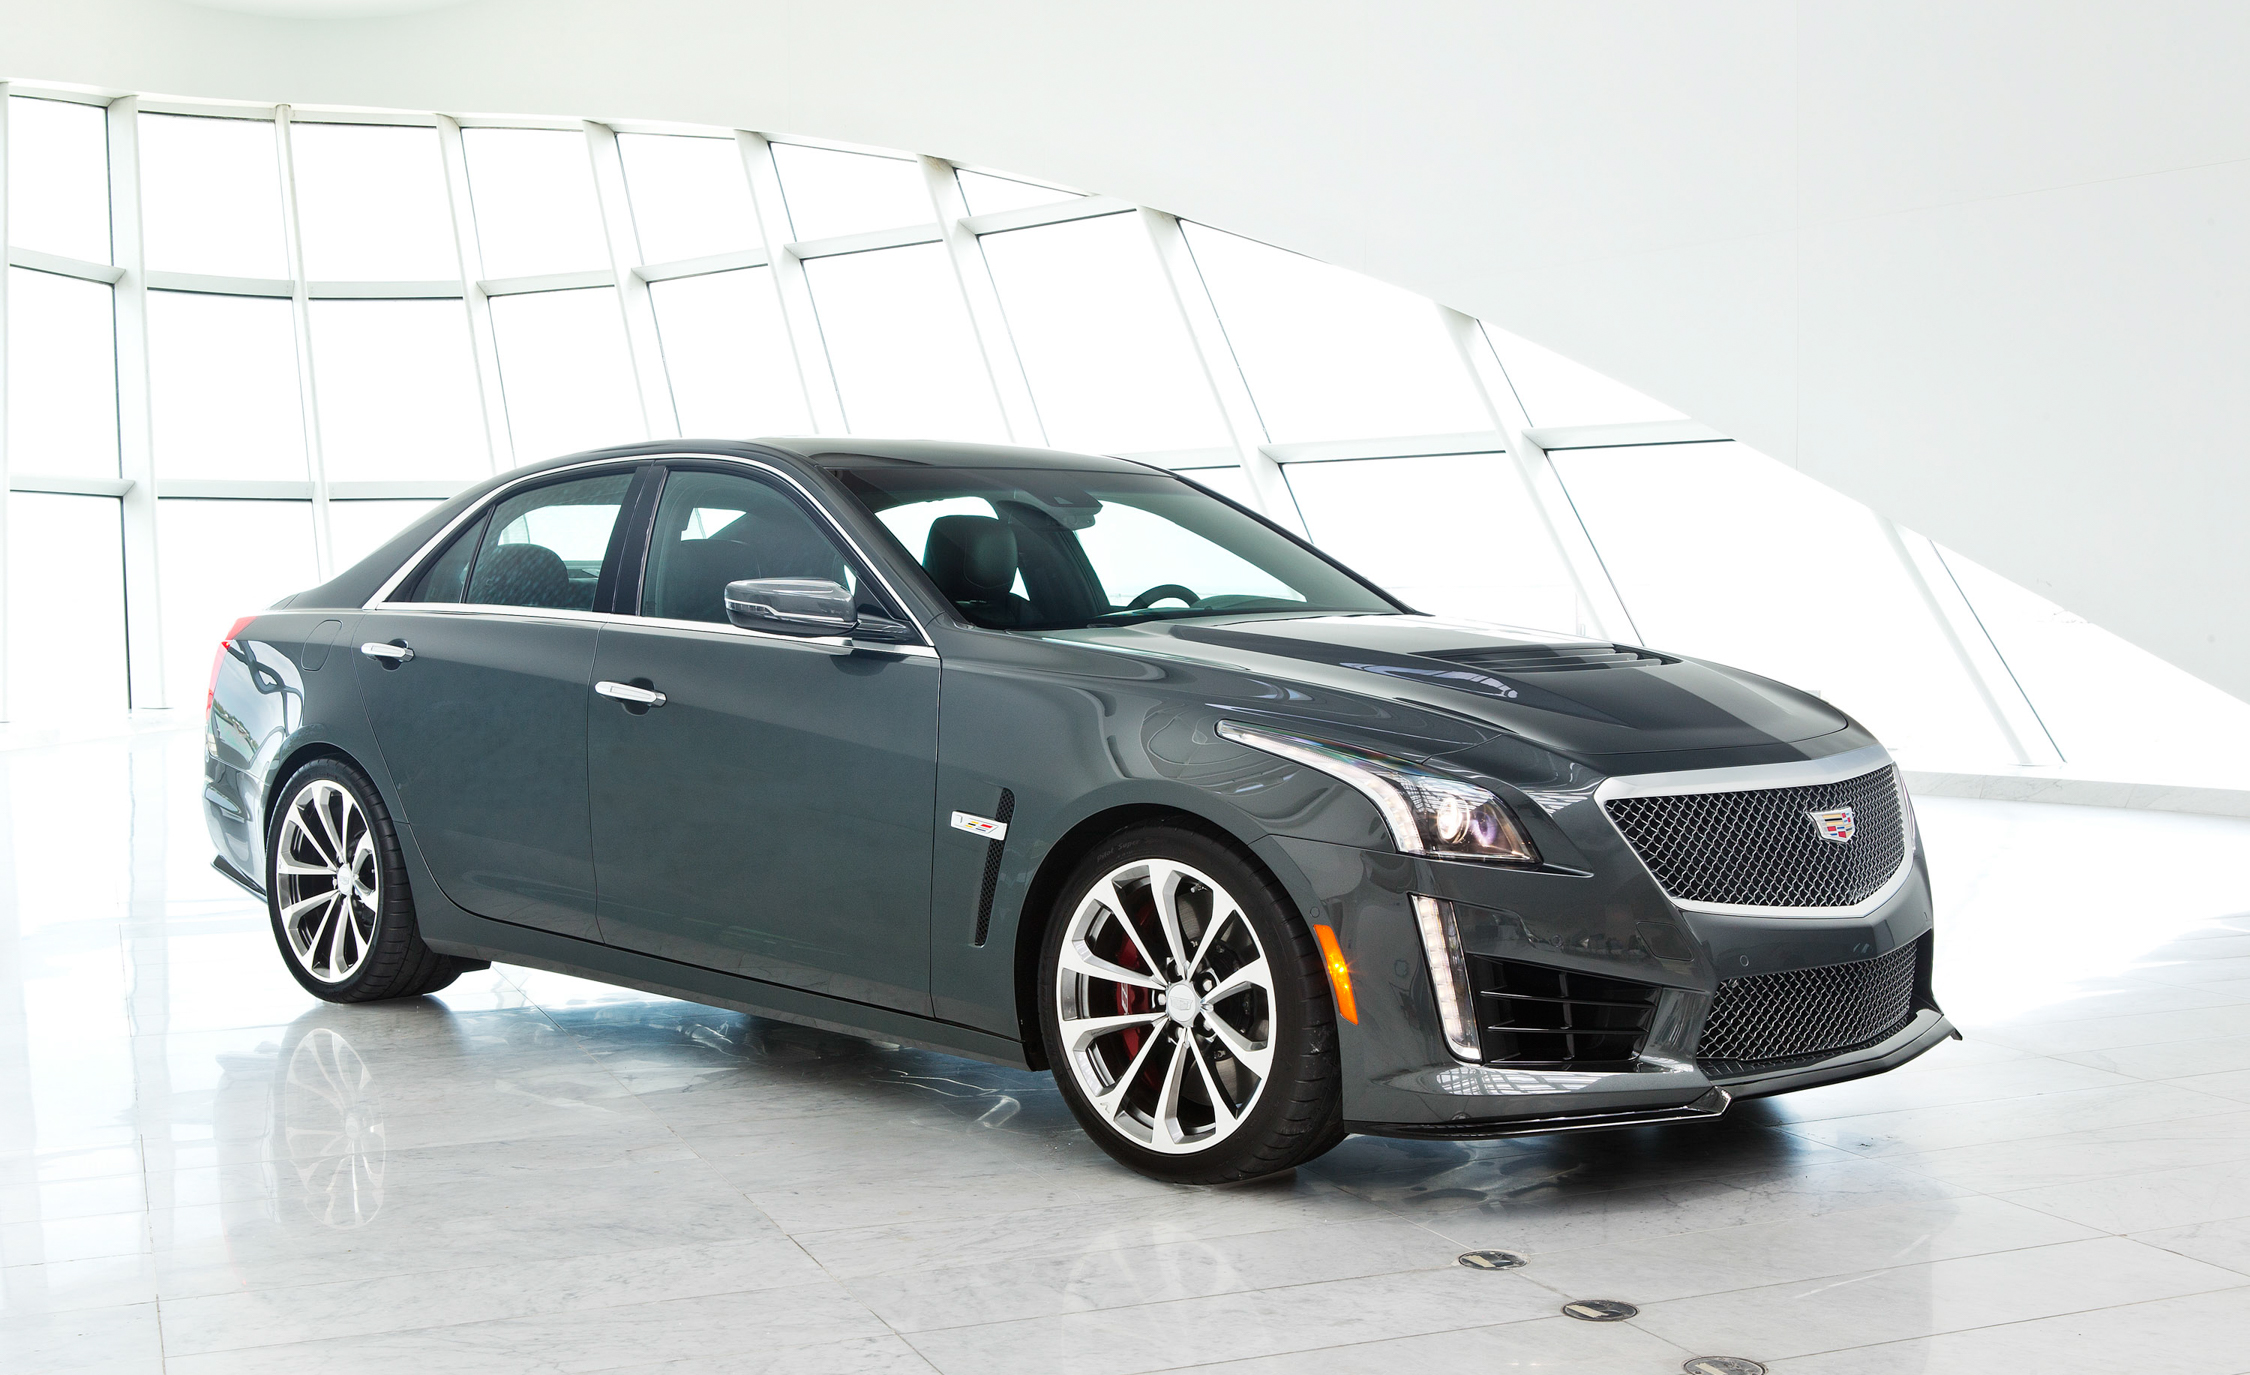 2016 Cadillac CTS-V Side View